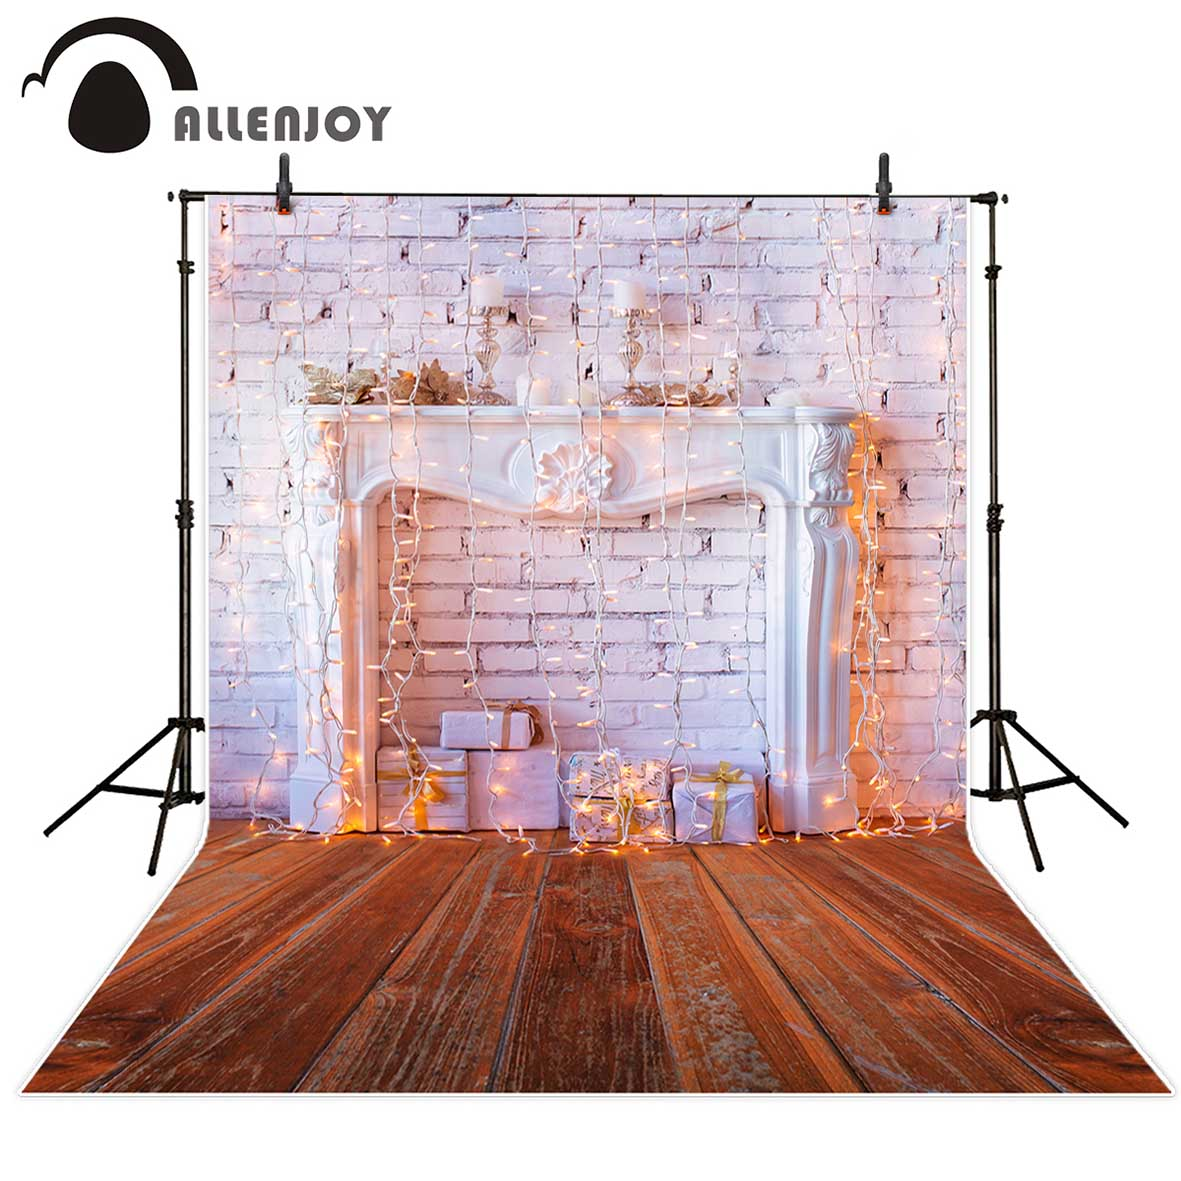 Allenjoy christmas photography backdrops Christmas background gifts white brick wall wooden floor bulbs table for baby for kids hijklnl 2017 new winter female cotton jacket long thicken coat casual korean style women parkas overcoat hyt002